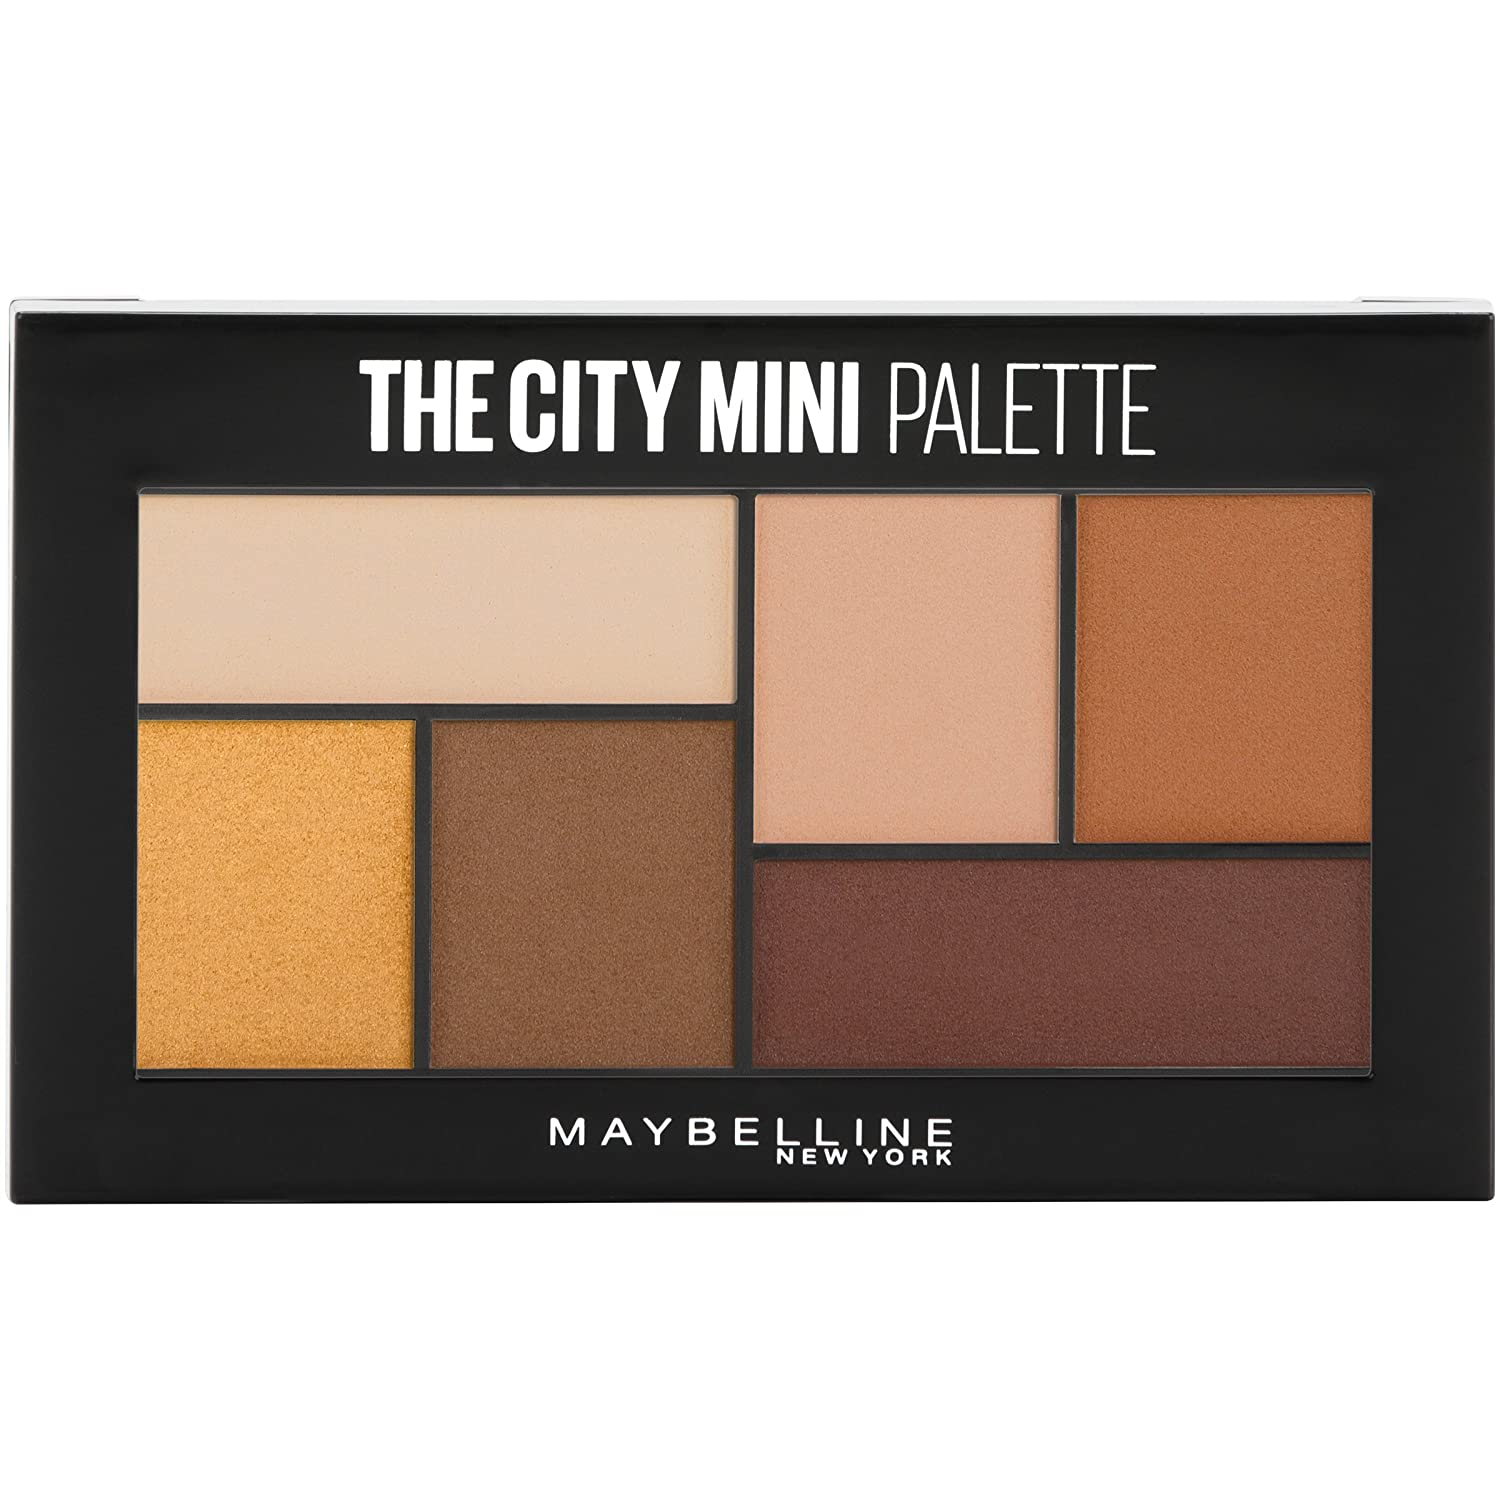 Maybelline New York The City Mini Eyeshadow Palette Makeup, Blushed Avenue, 0.14 oz. 041554552492